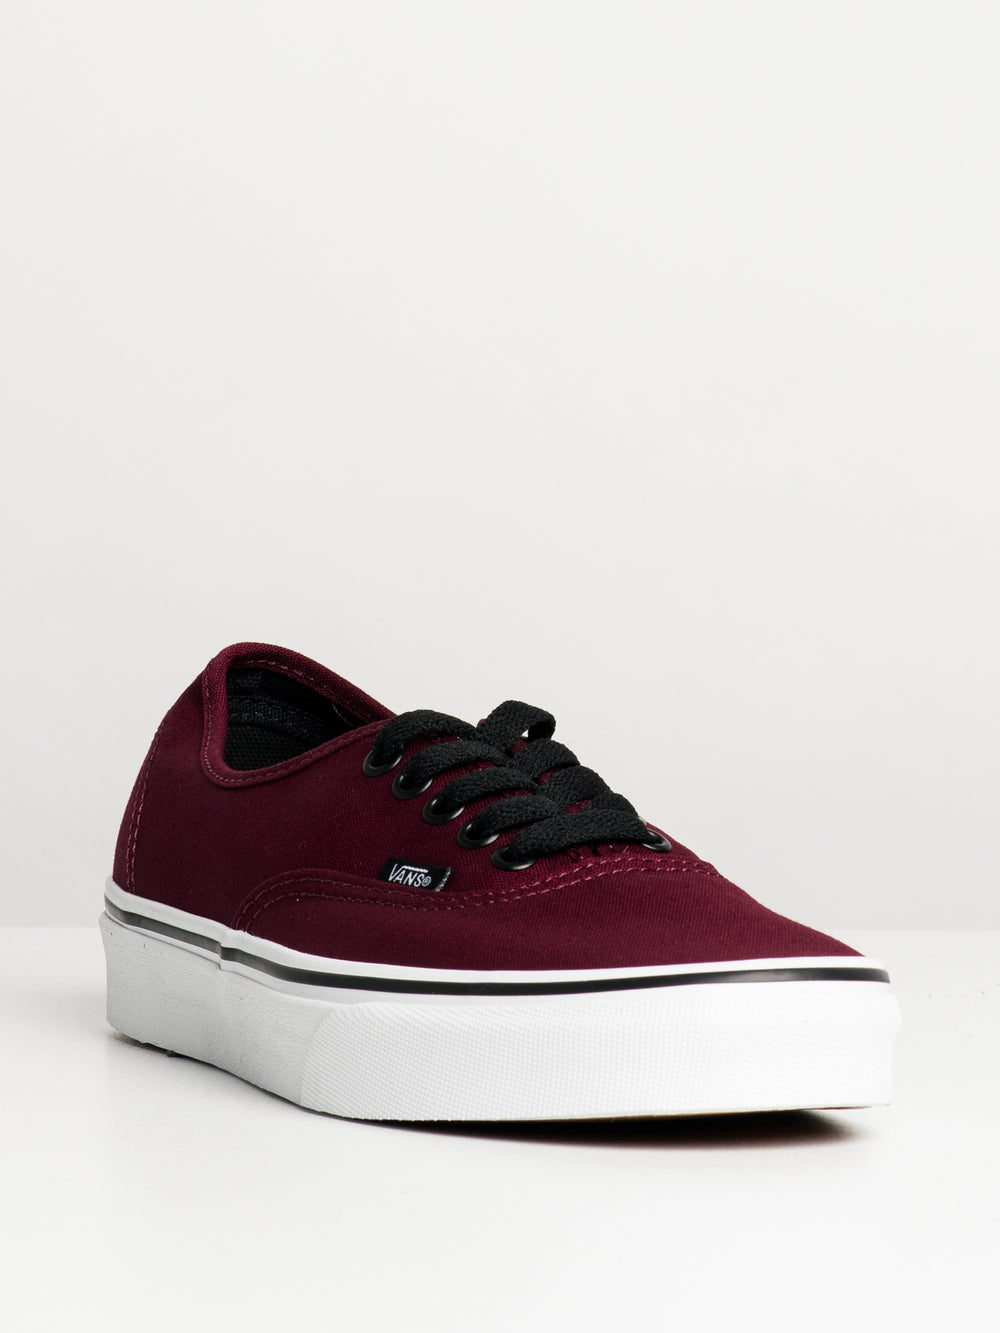 MENS AUTH CANVAS SHOES